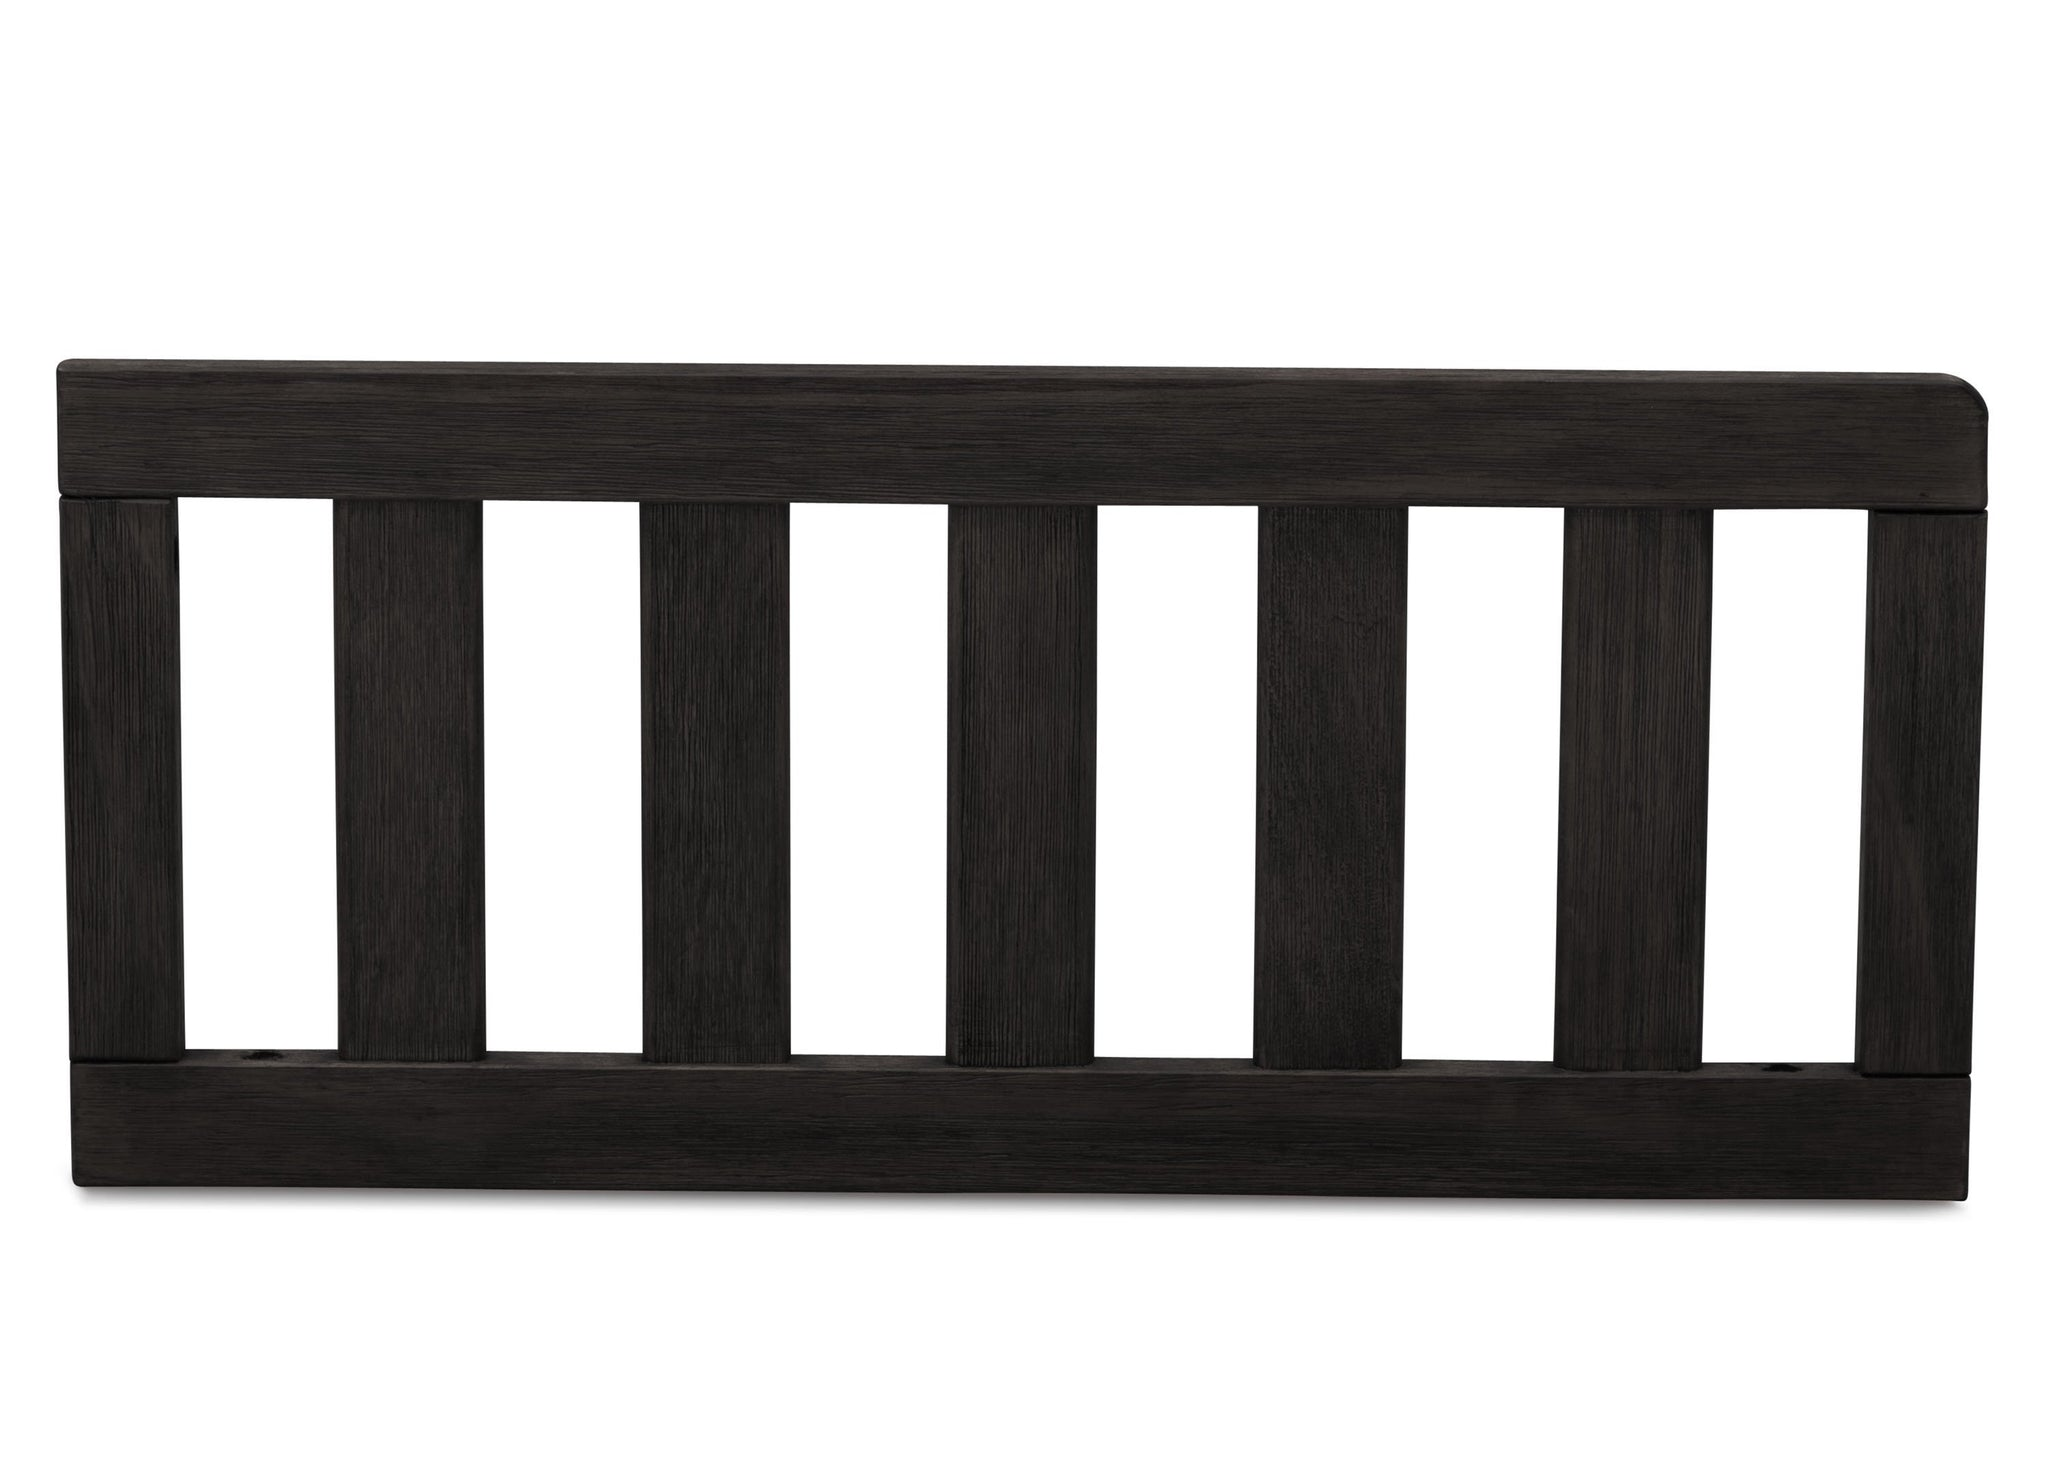 Delta Children Rustic Ebony (935) Toddler Guardrail (705725), c1c